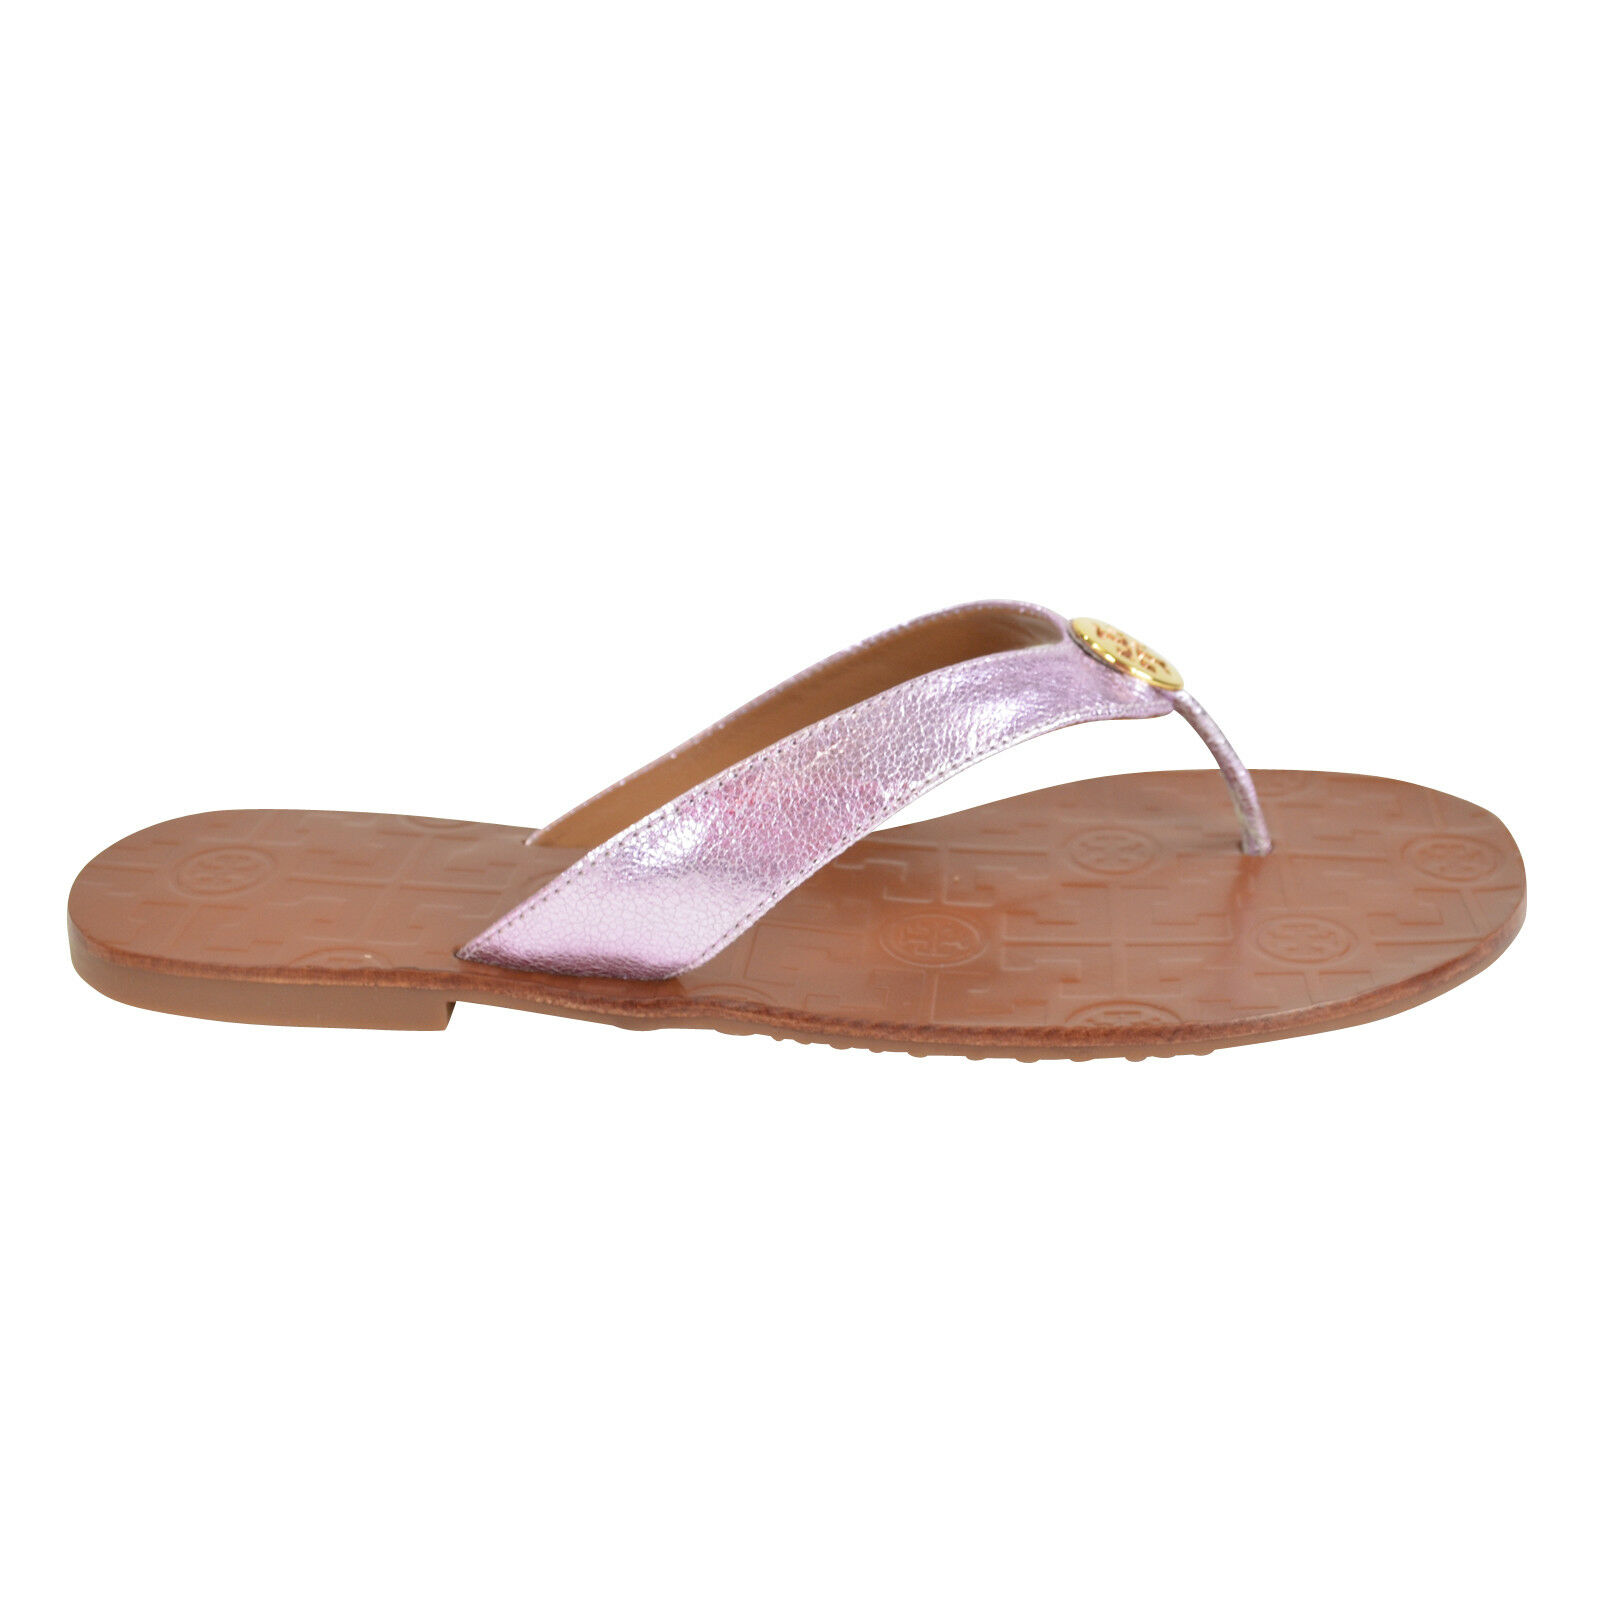 5329375d6 Details about Tory Burch THORA Reverse Metallic Leather Thong Sandals in  Rosa Pink 8